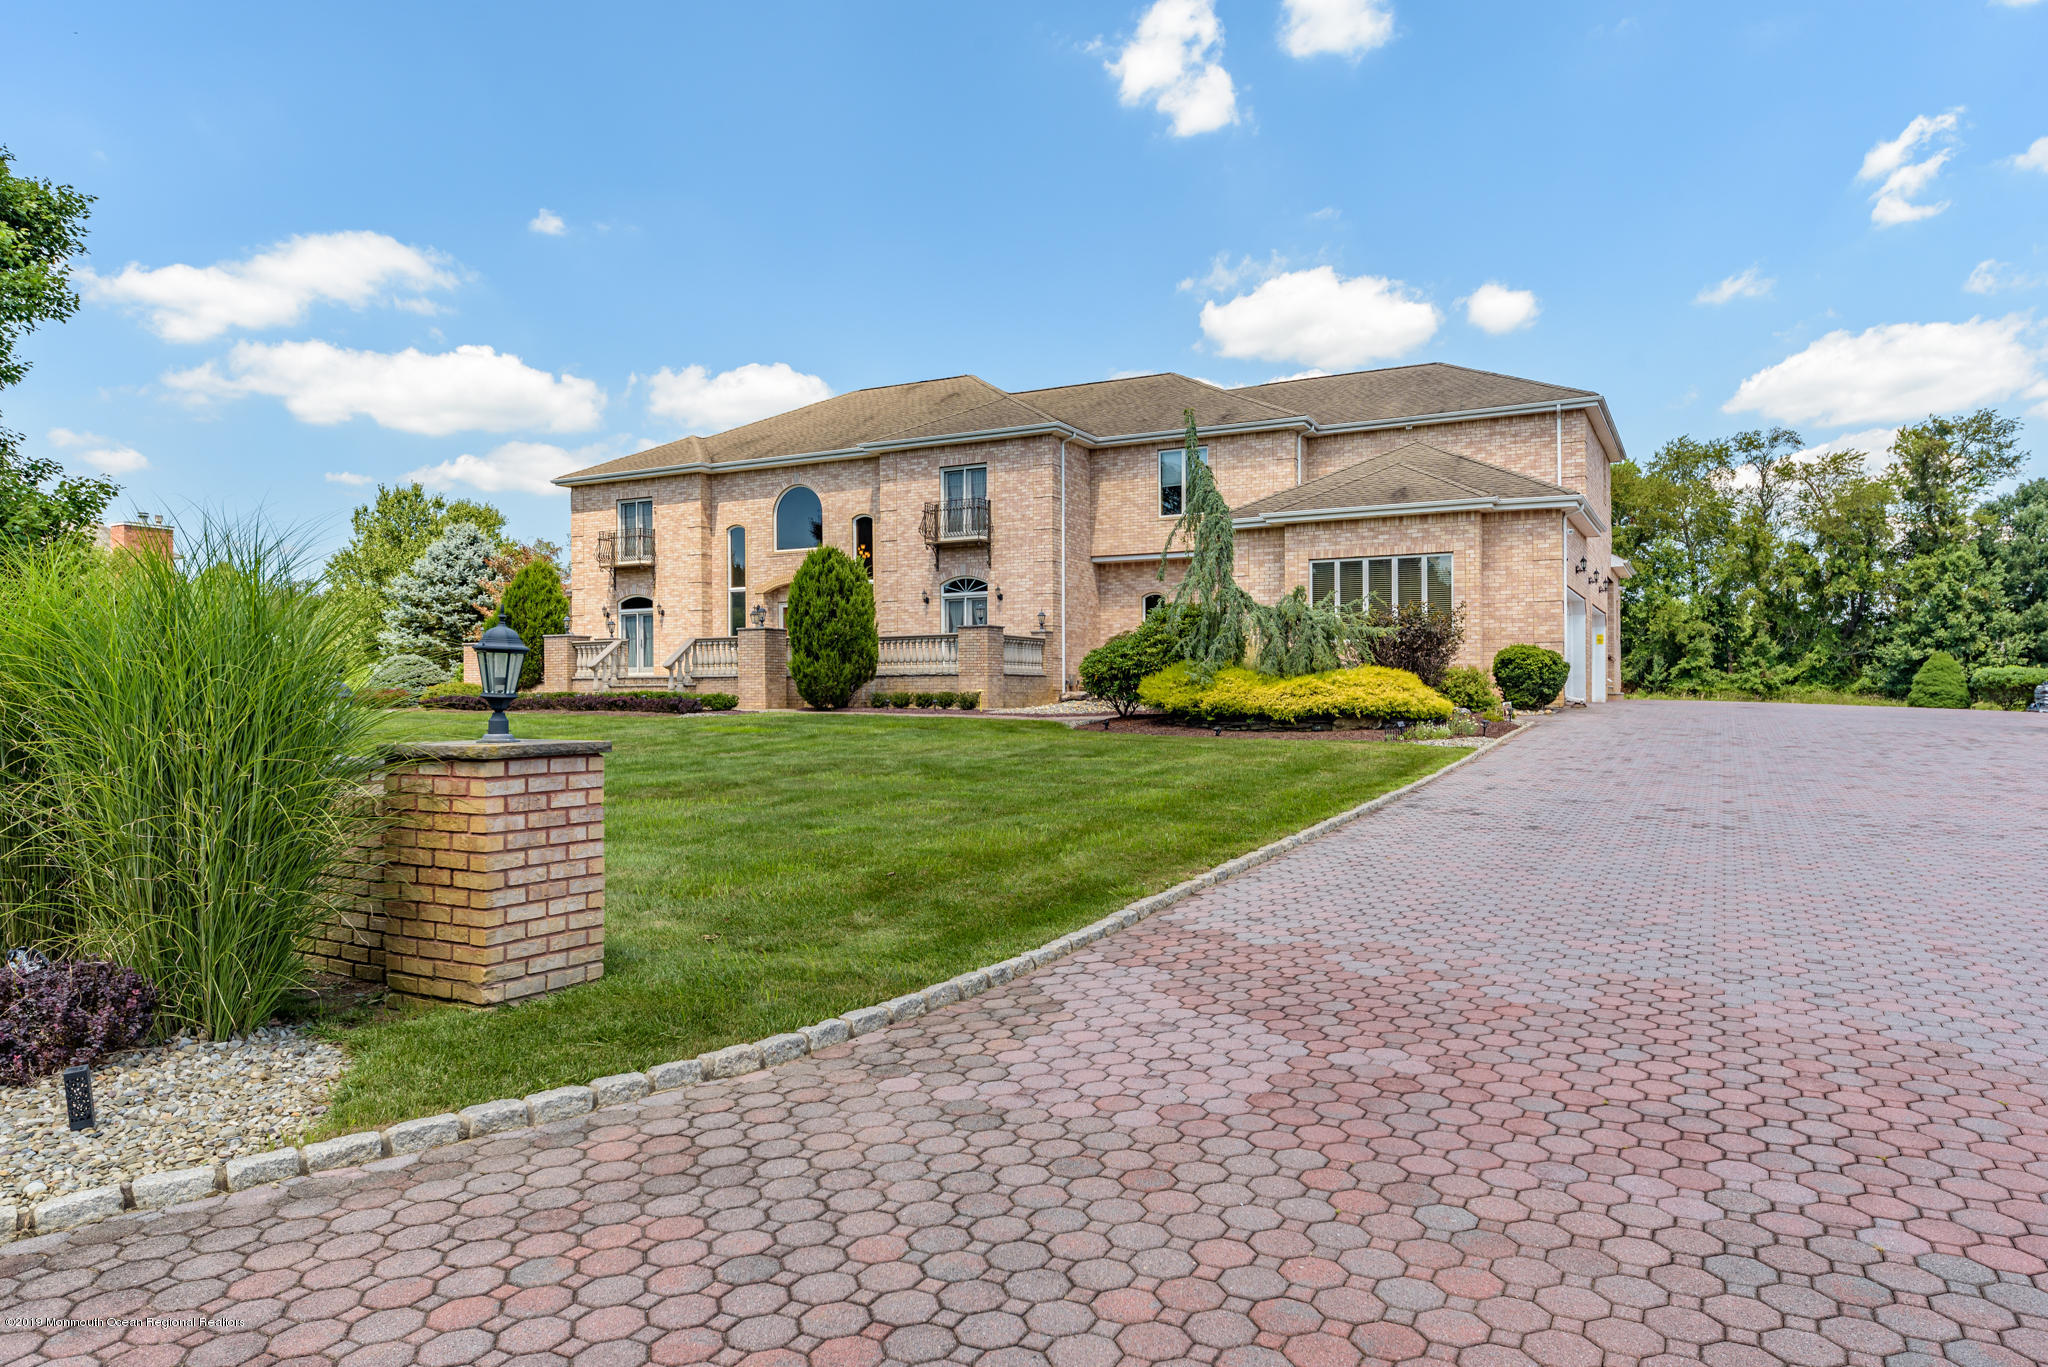 7  Lebers Lane,  Millstone, NJ